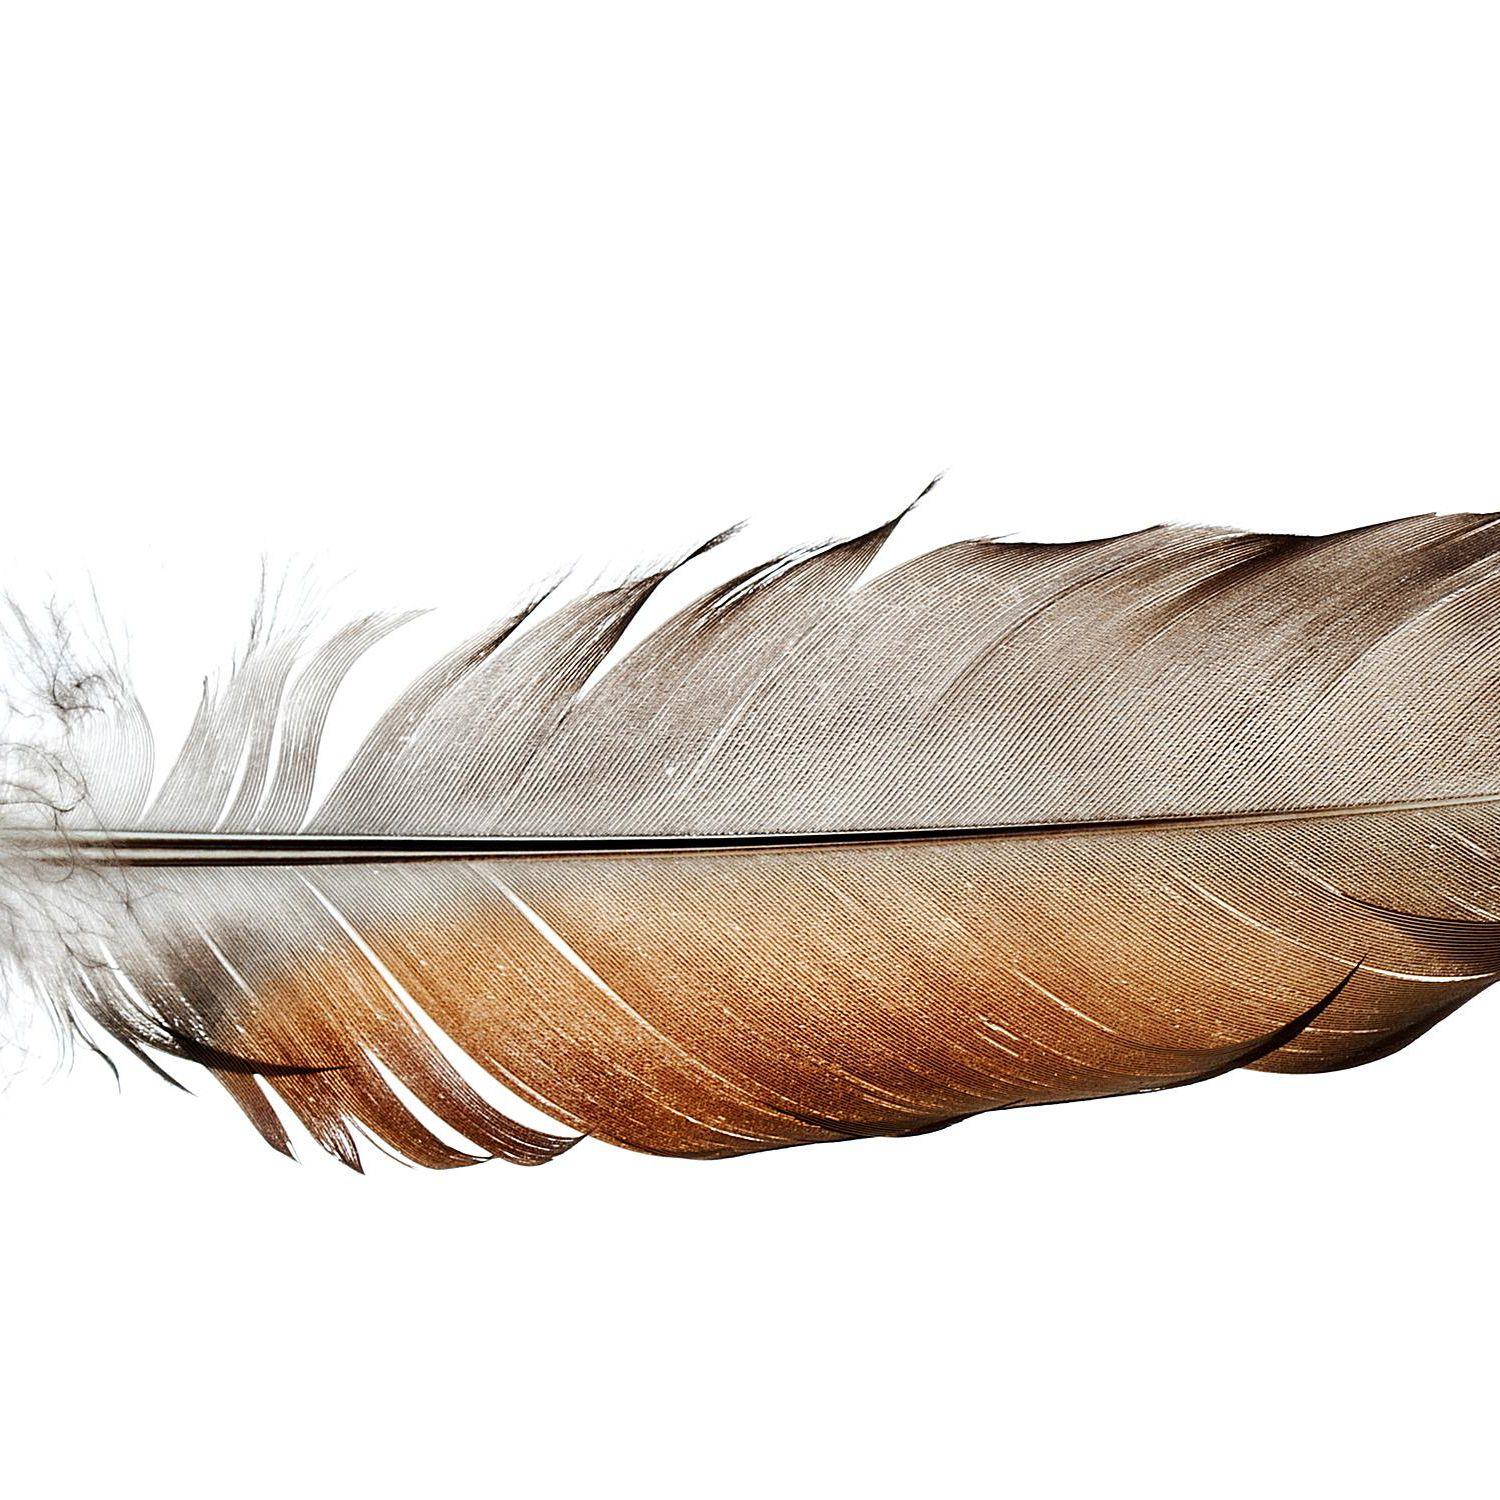 Ecology of Feathers